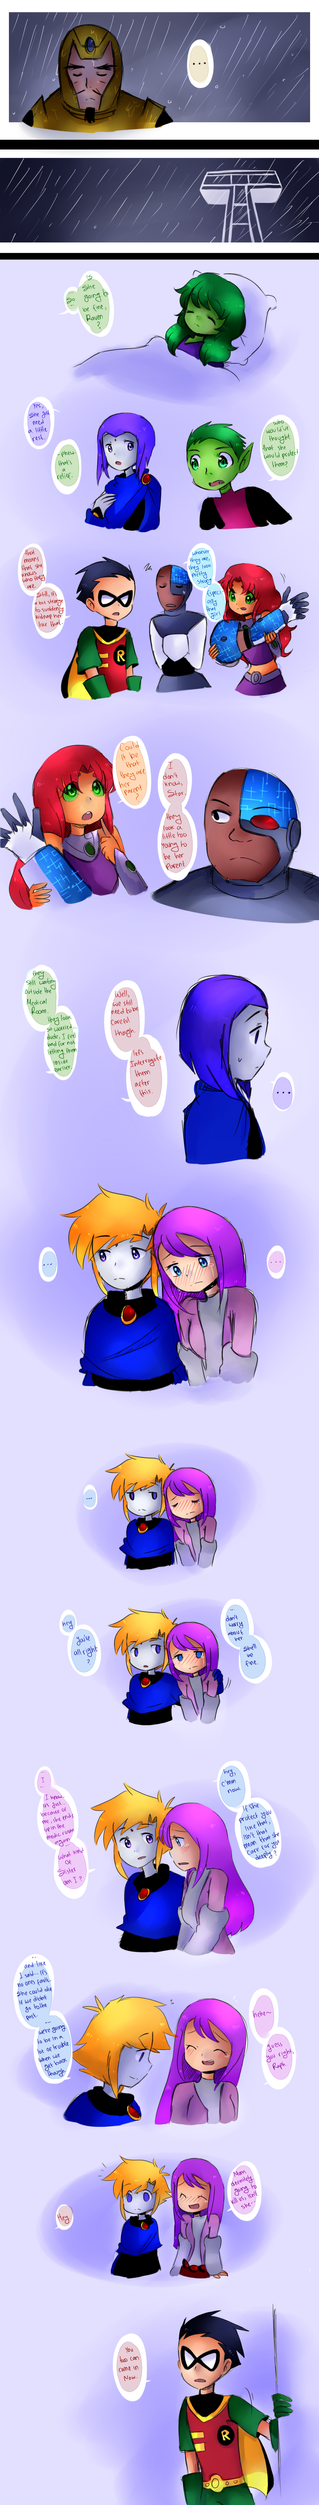 .: Sakutia Disease : Page 23 :. by FnFiNdOART